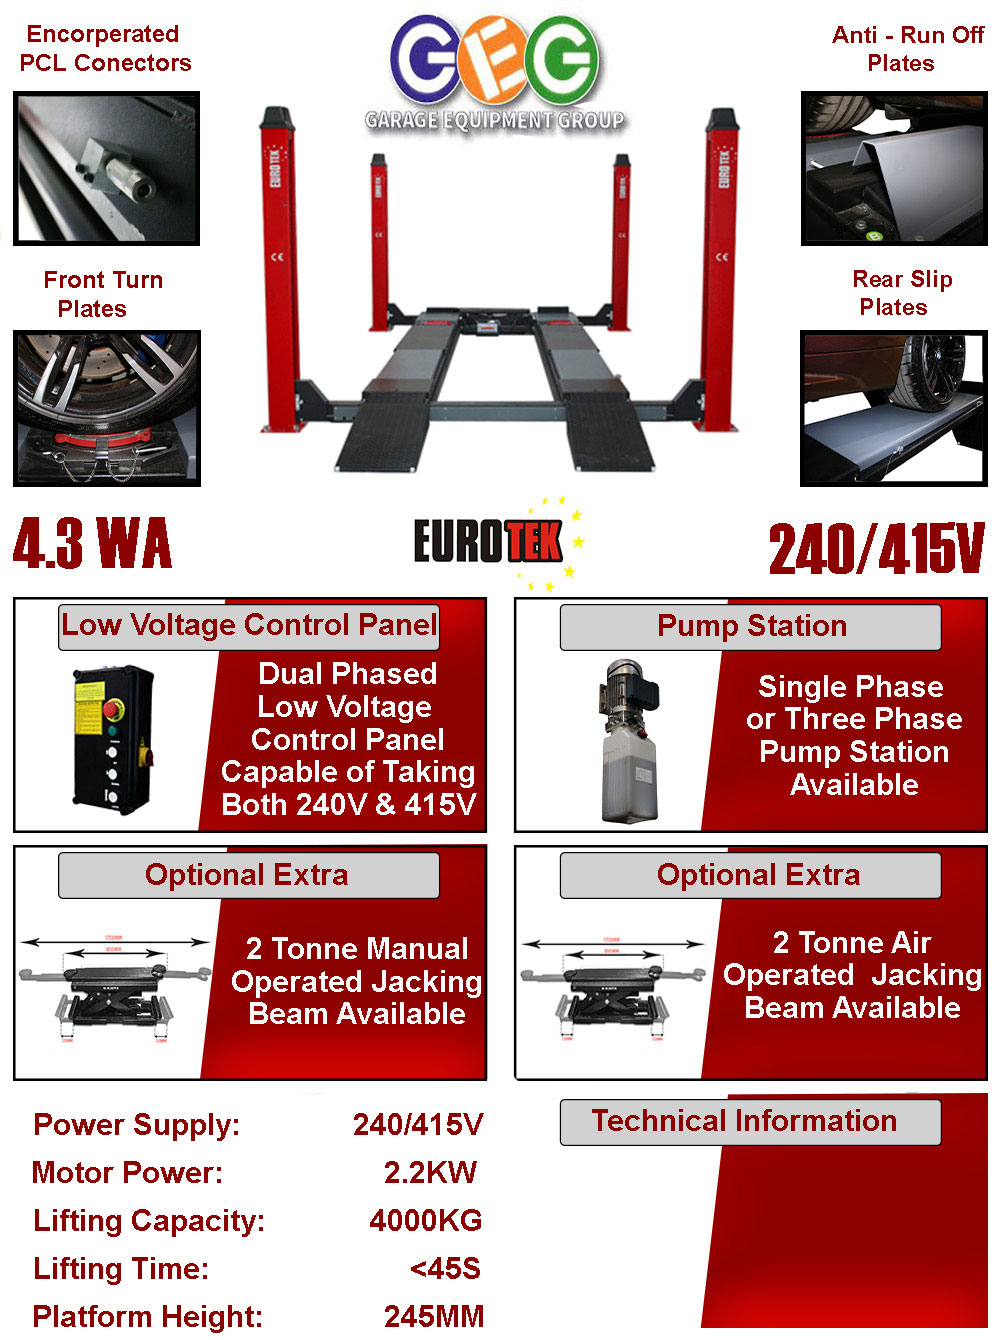 information flyer for 4.3WA 4 post lift